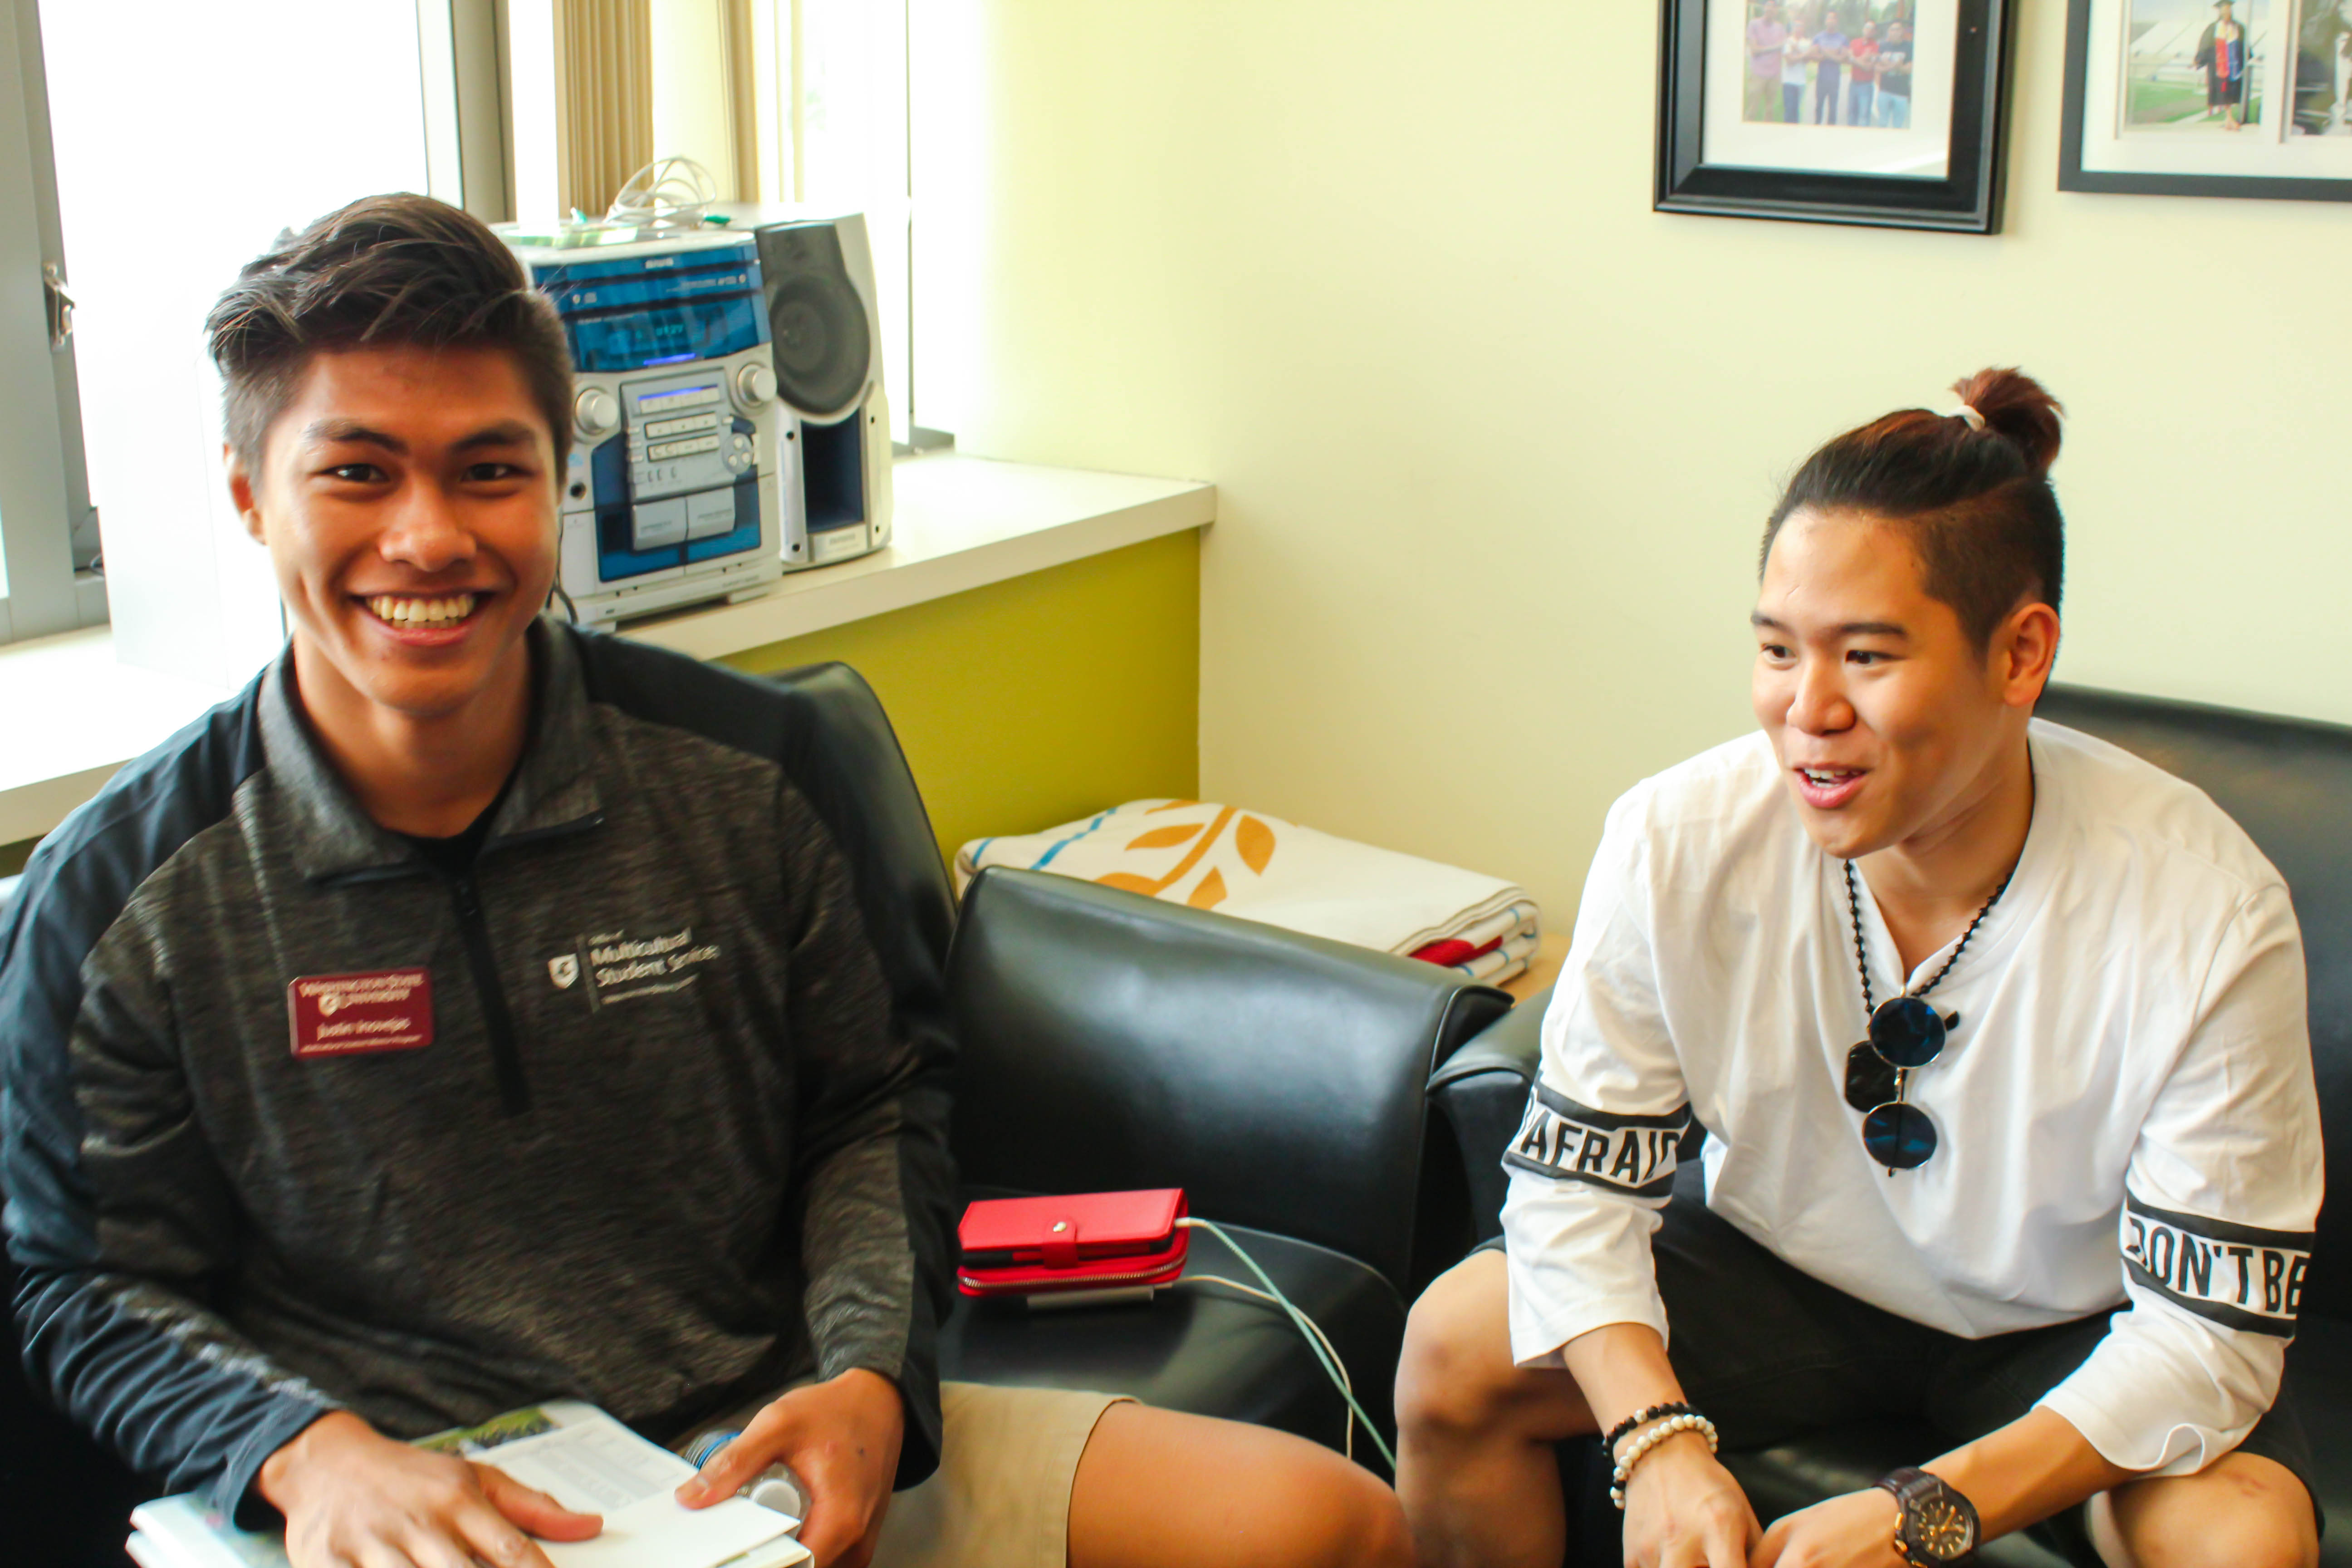 Mentor and Mentee meeting during open house event